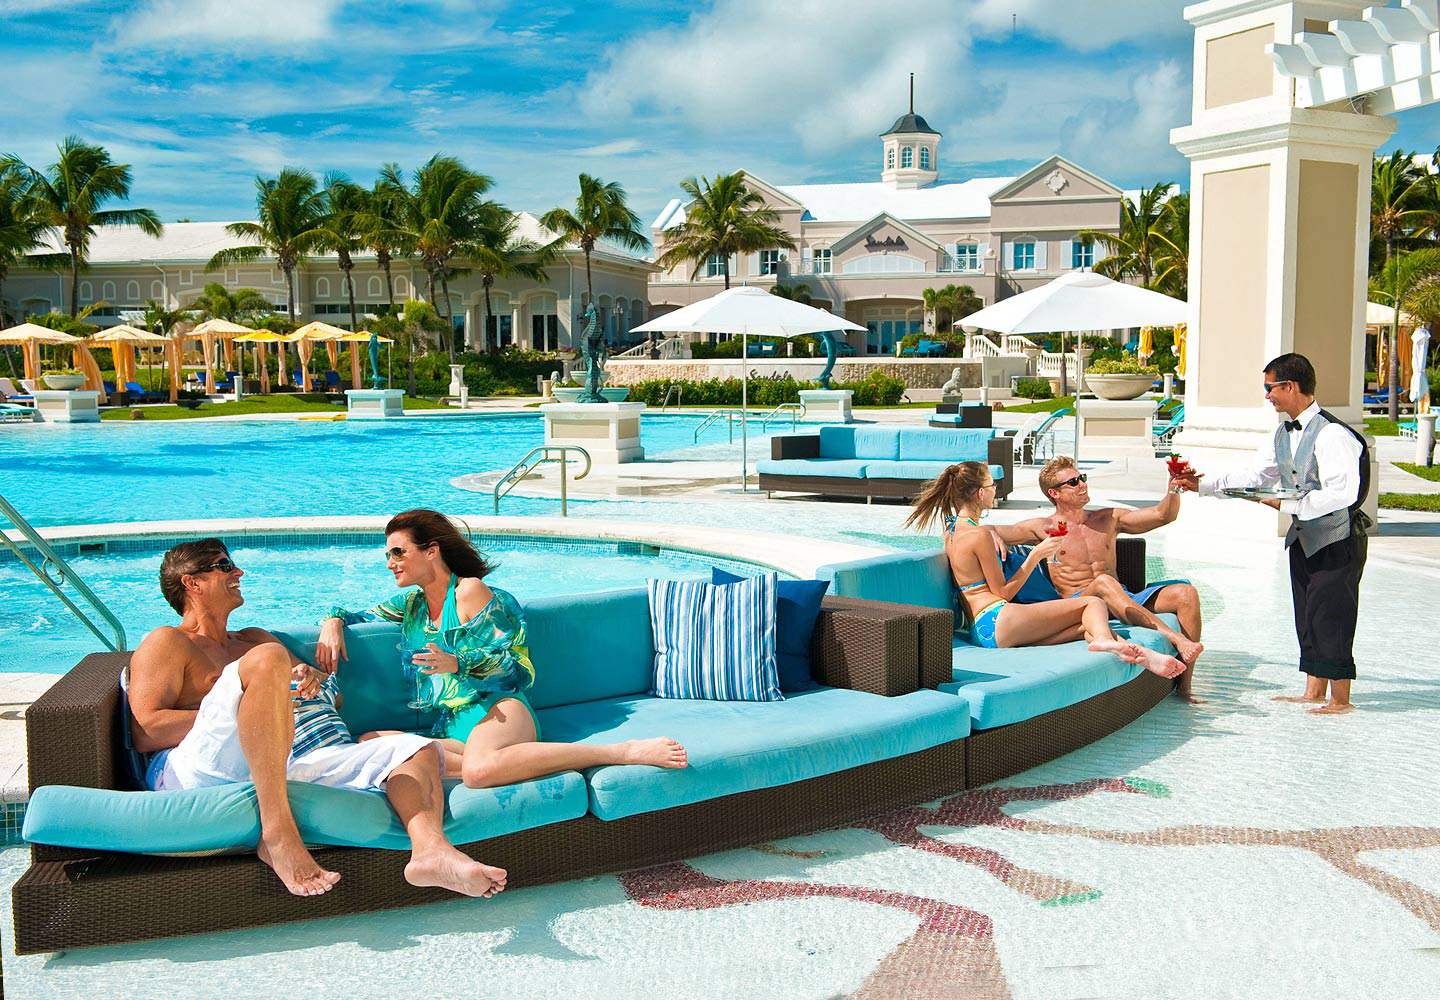 Travel Agency All-Inclusive Resort Sandals Emerald Bay 017